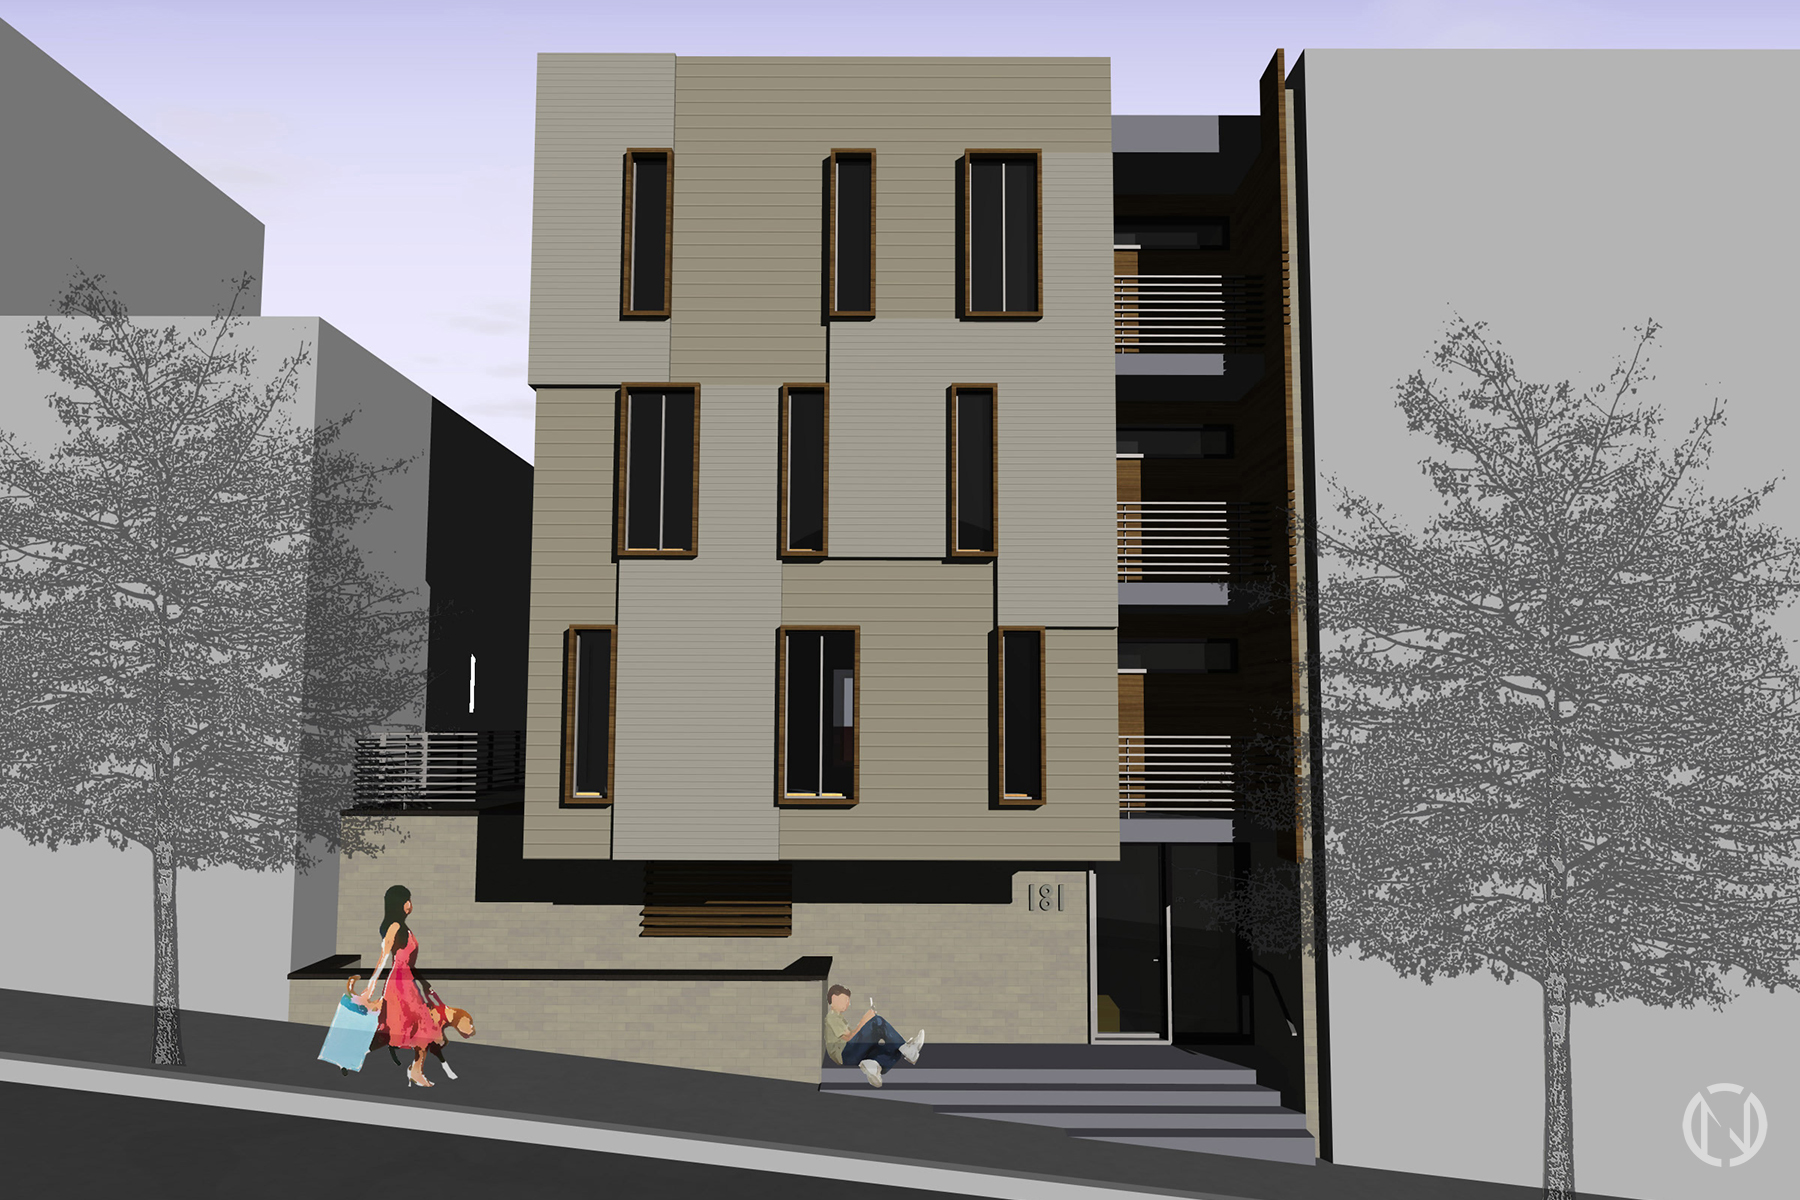 Brighton 3 (Boston Architect Modern Residential Development).jpg